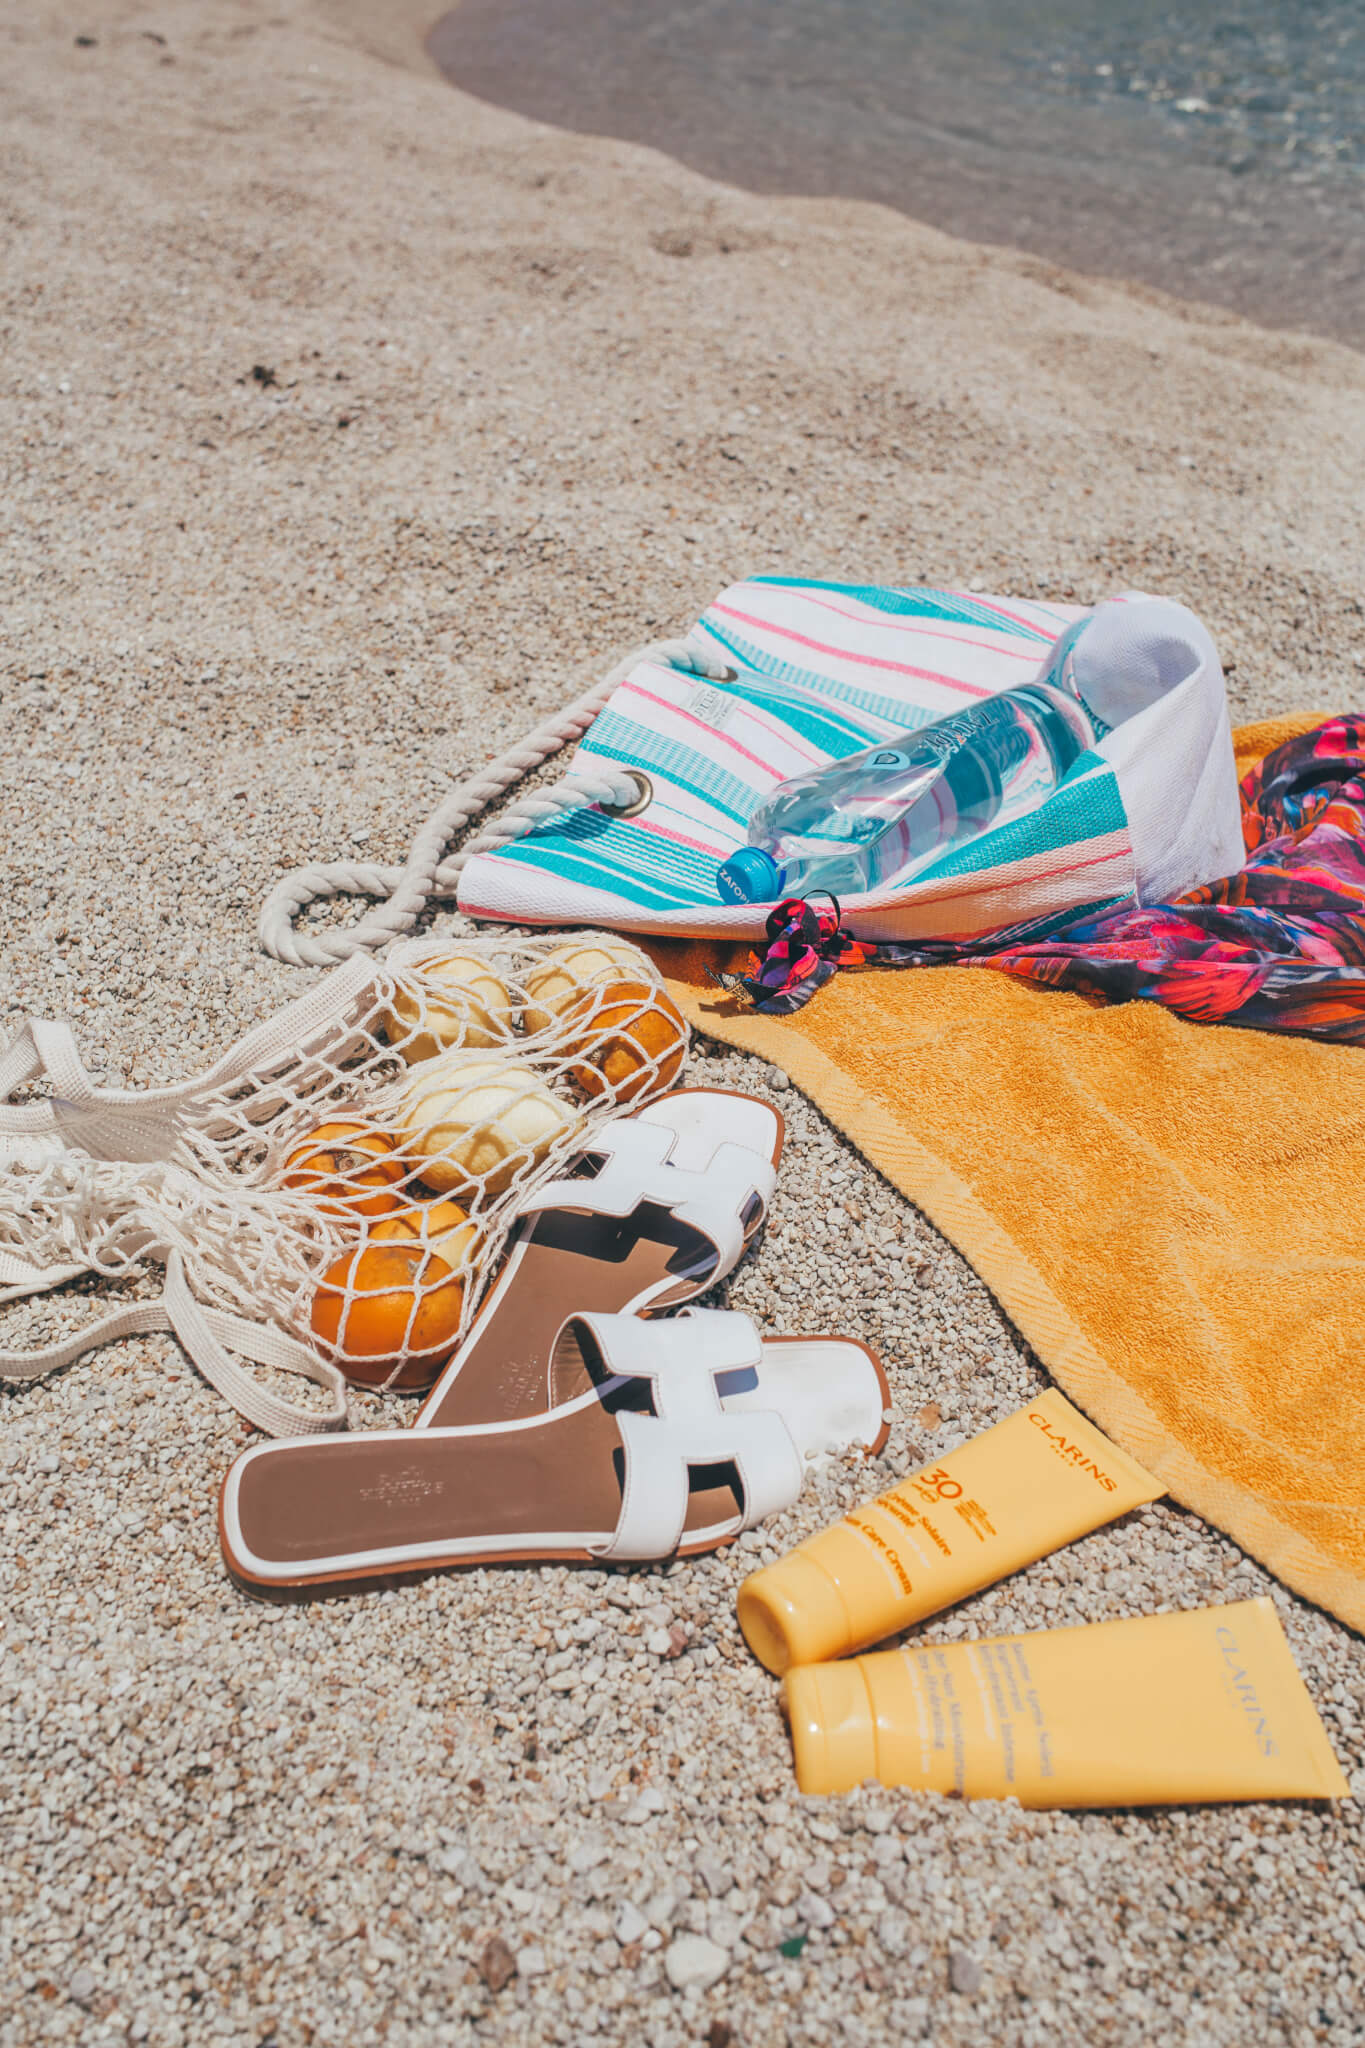 Summer Essentials: What's In My Beach Bag